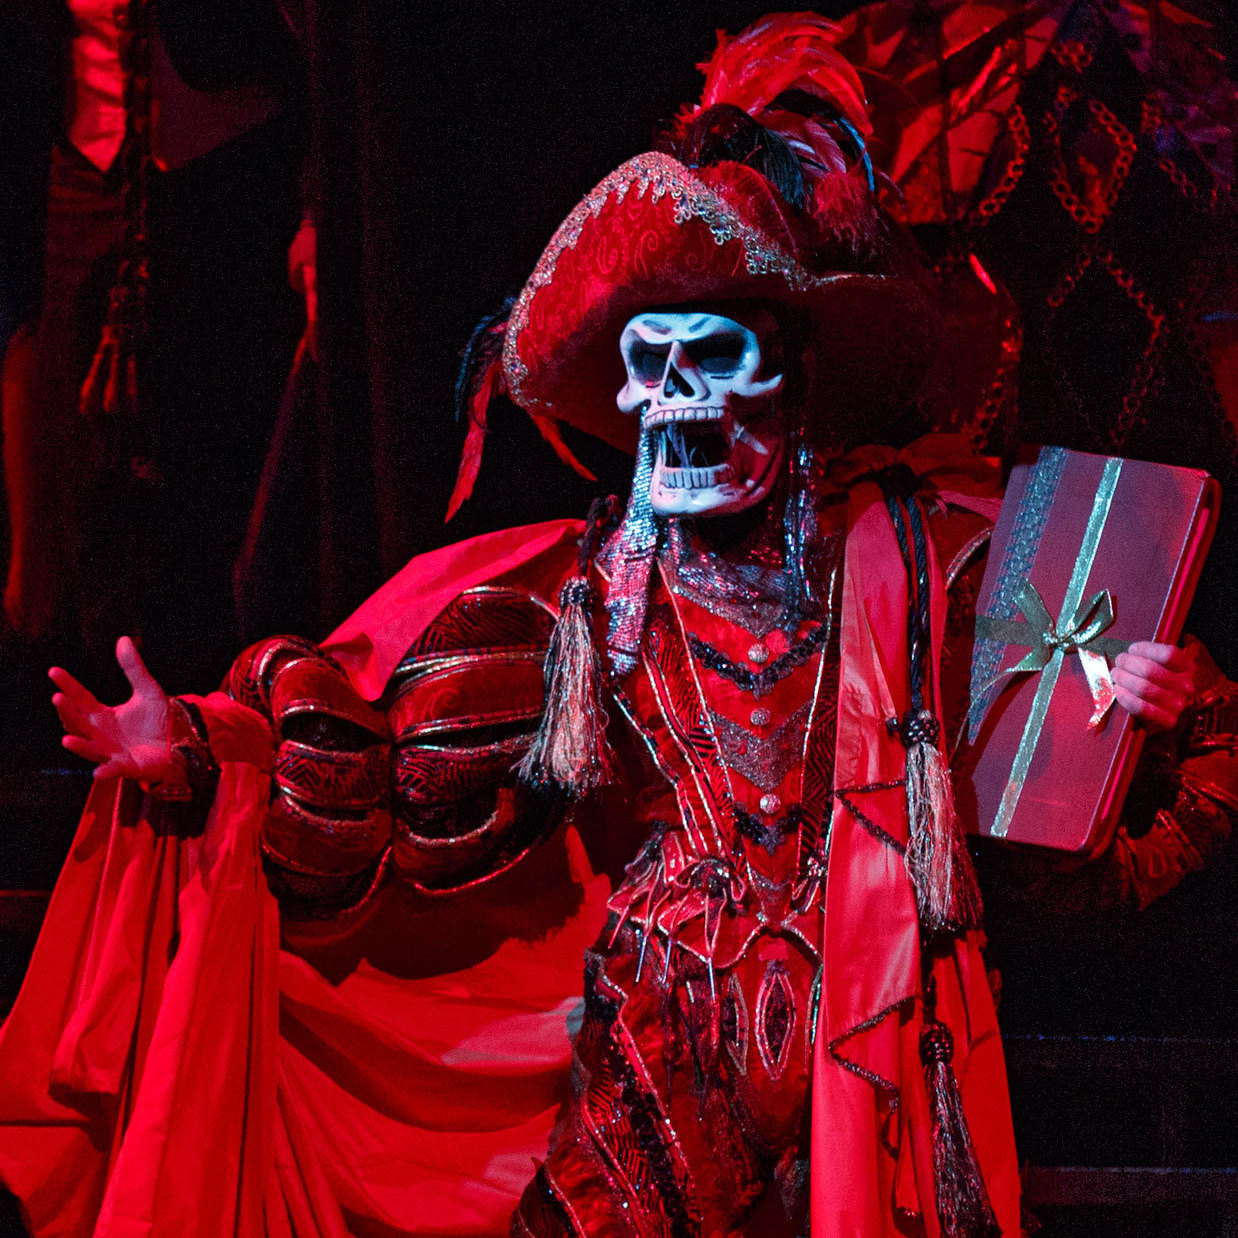 Hugh Panaro plays the title character -- here done up as The Red Death for the show's spectacular masked-ball scene -- in The Phantom of the Opera, Broadway's longest-running show. Twenty-two years ago, Panaro made his debut with the show as Raoul, the male romantic lead.